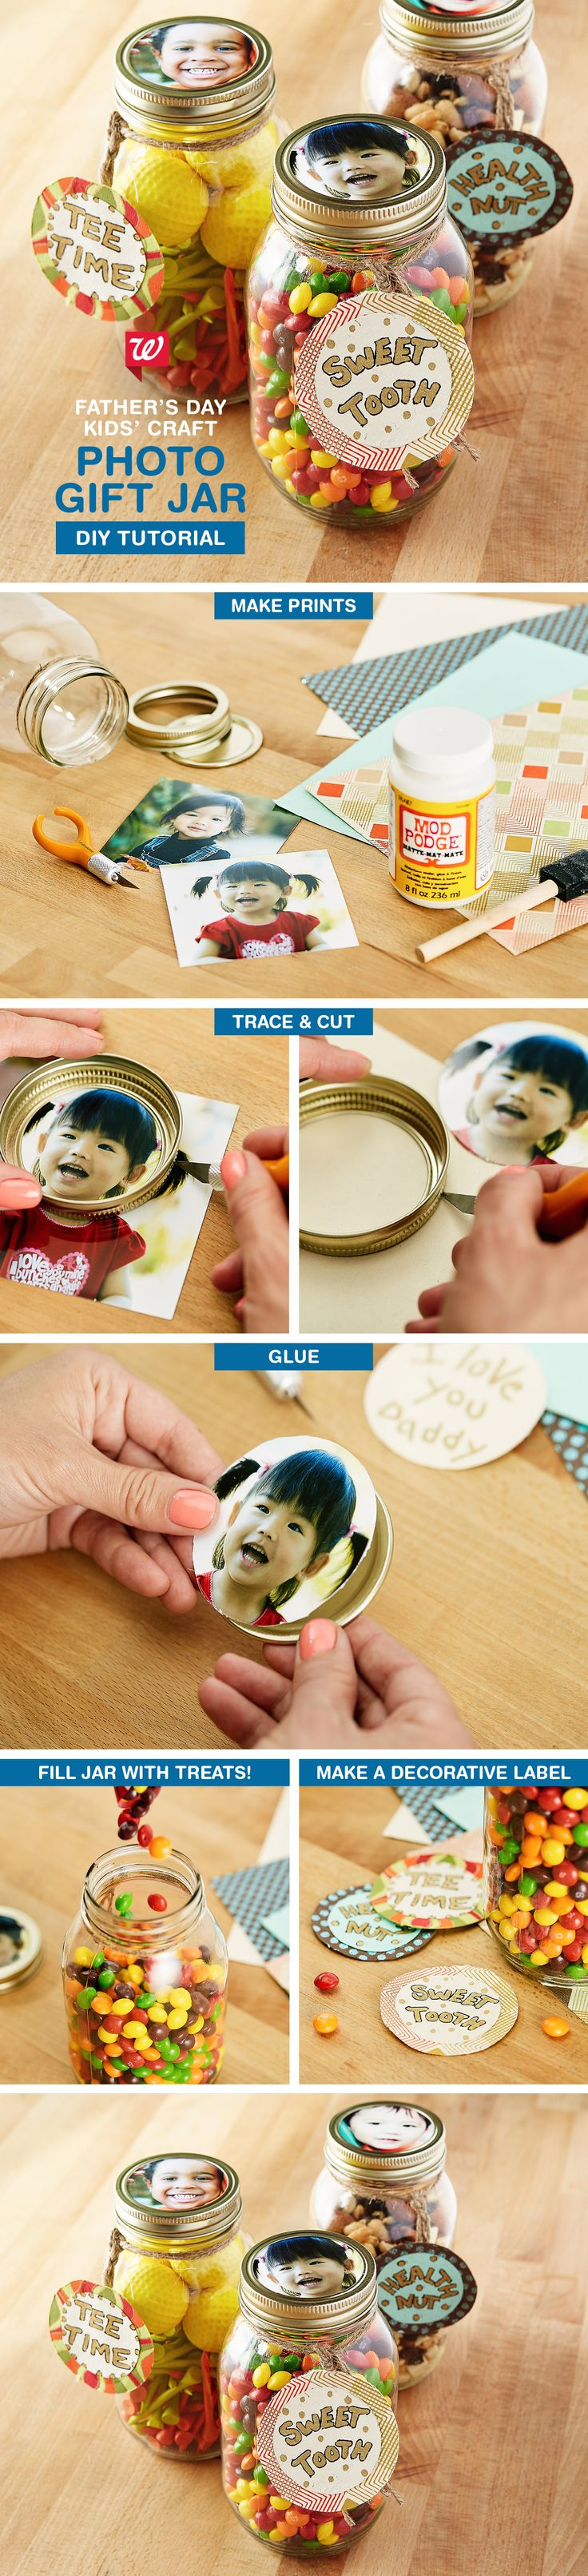 Easy kids' craft idea for Father's Day. Help the kids create a lasting gift Dad or Grandpa will adore. Fill a mason jar with his favorite things like candy, nuts, or golf tees, and use the lid to make a photo frame. See the how-to on our Smile Blog.